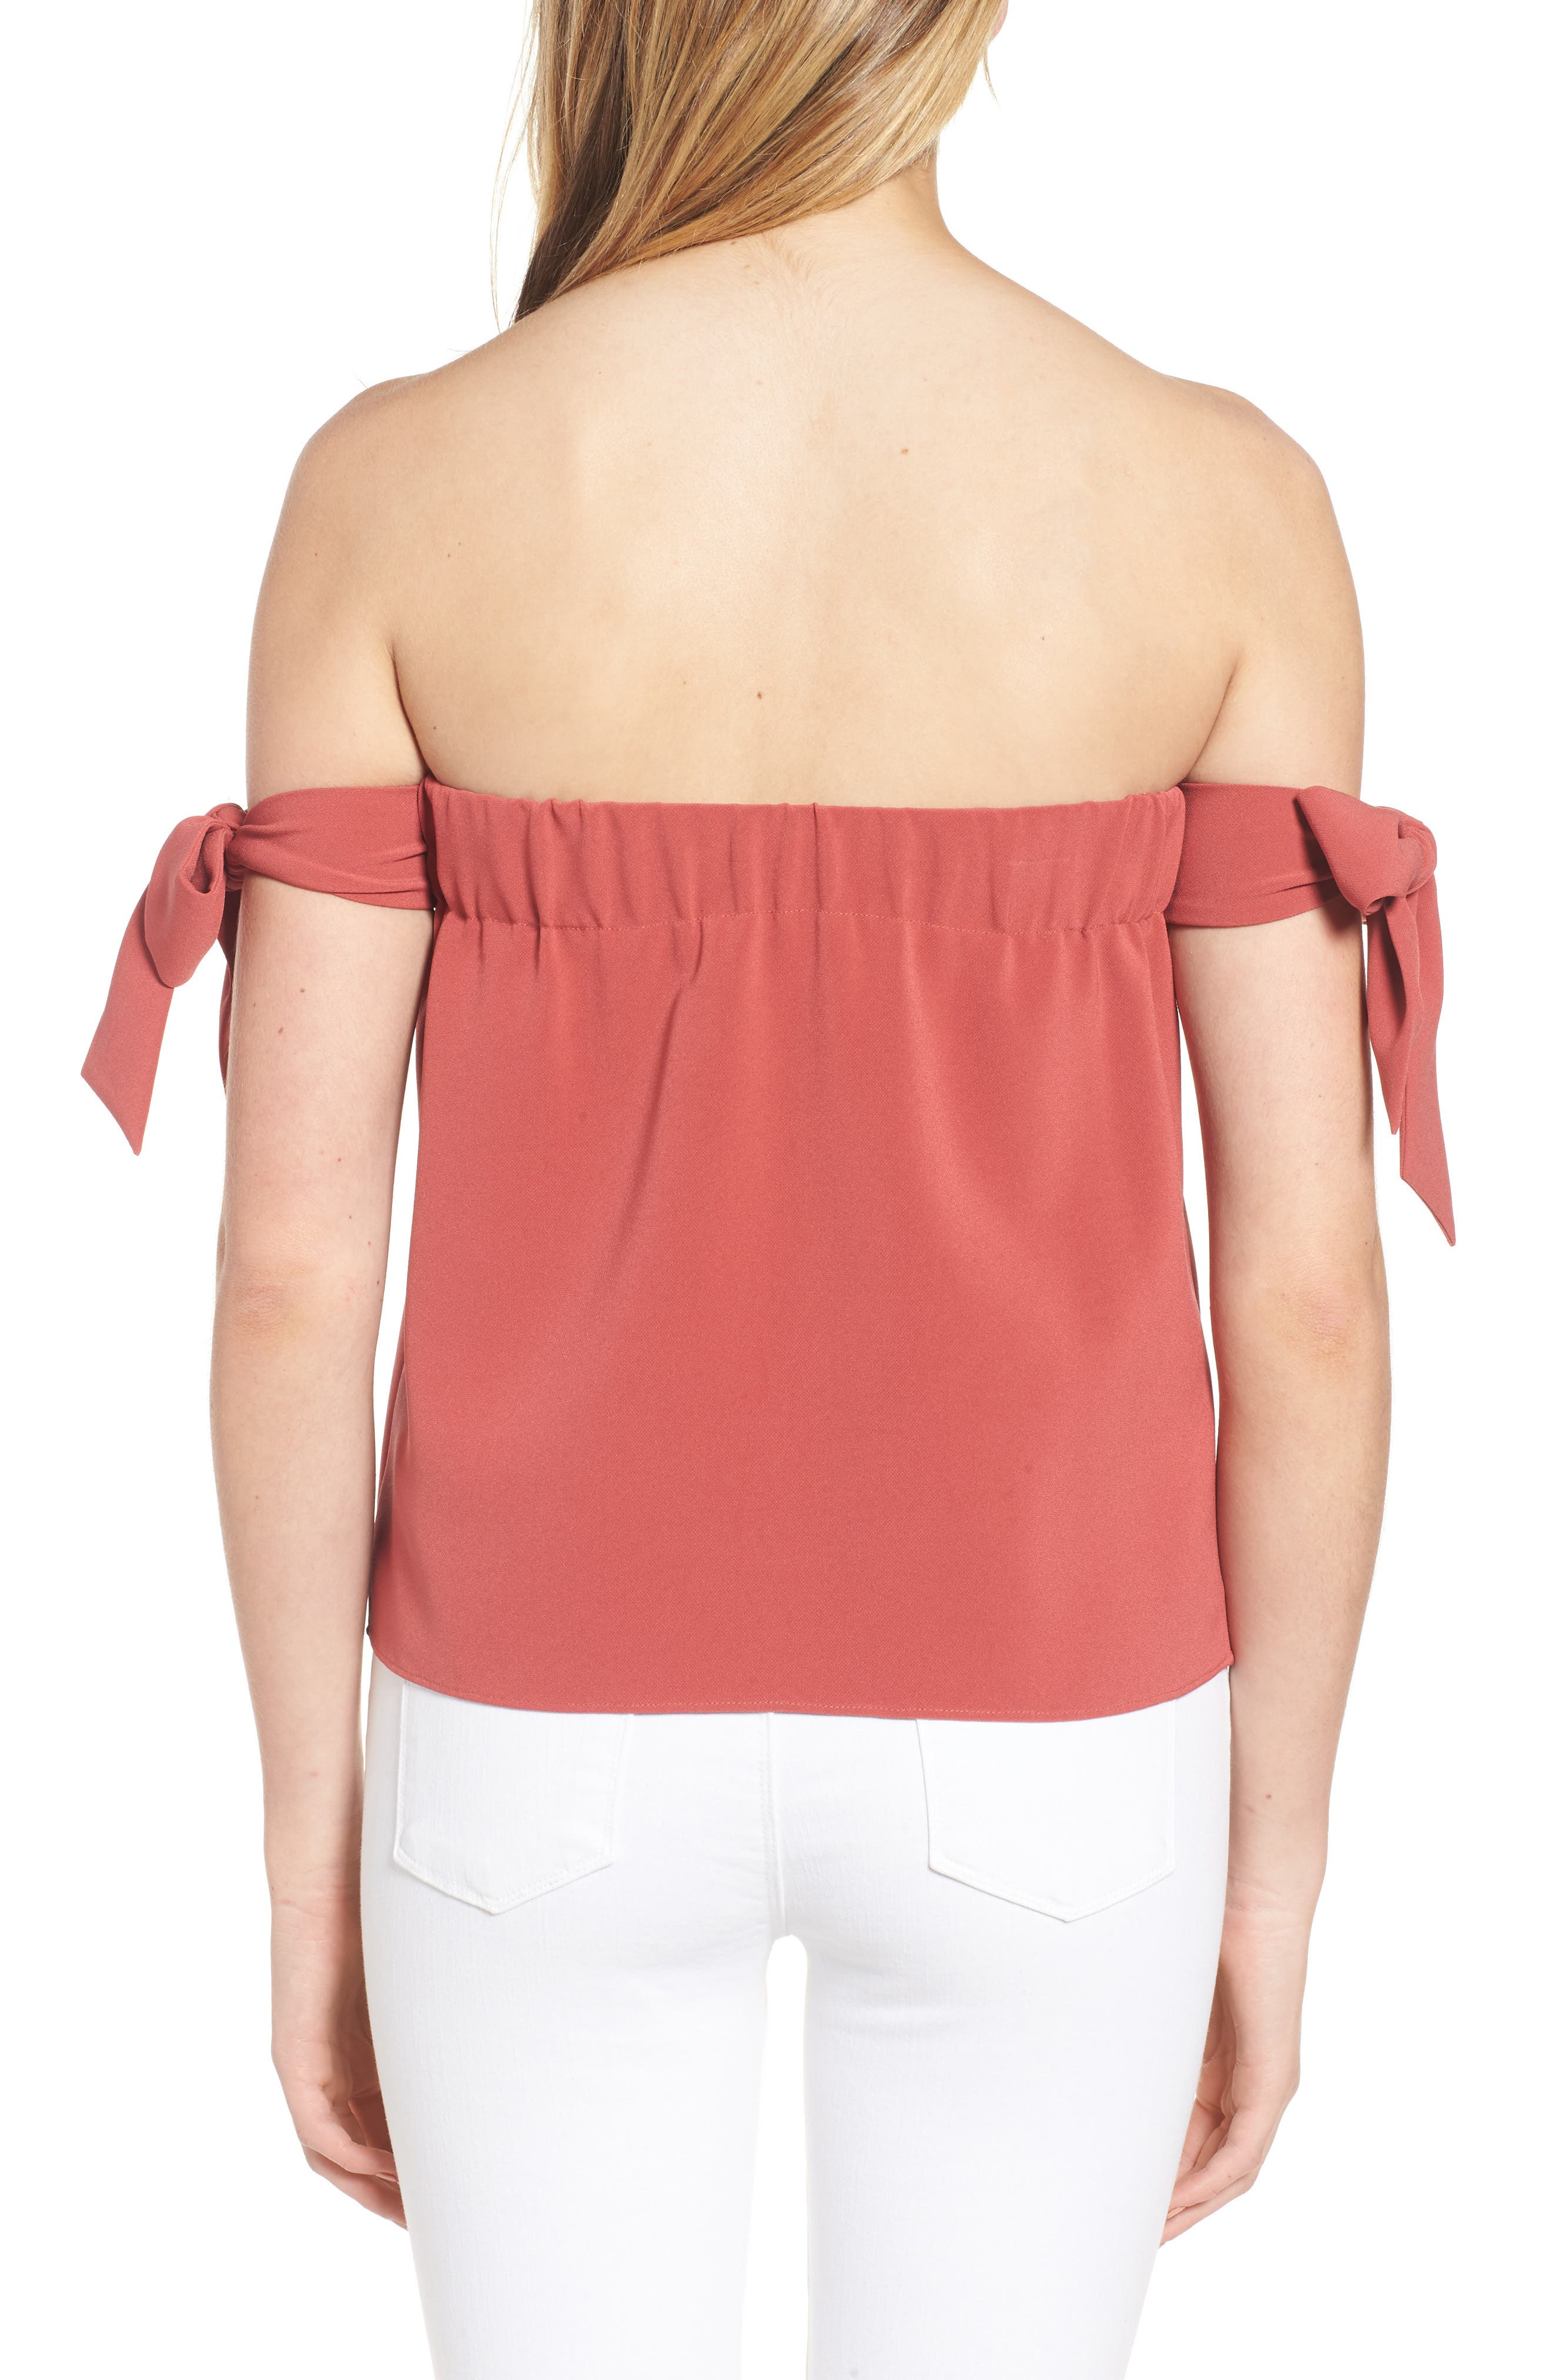 Lova Bow Off the Shoulder Top,                             Alternate thumbnail 2, color,                             604